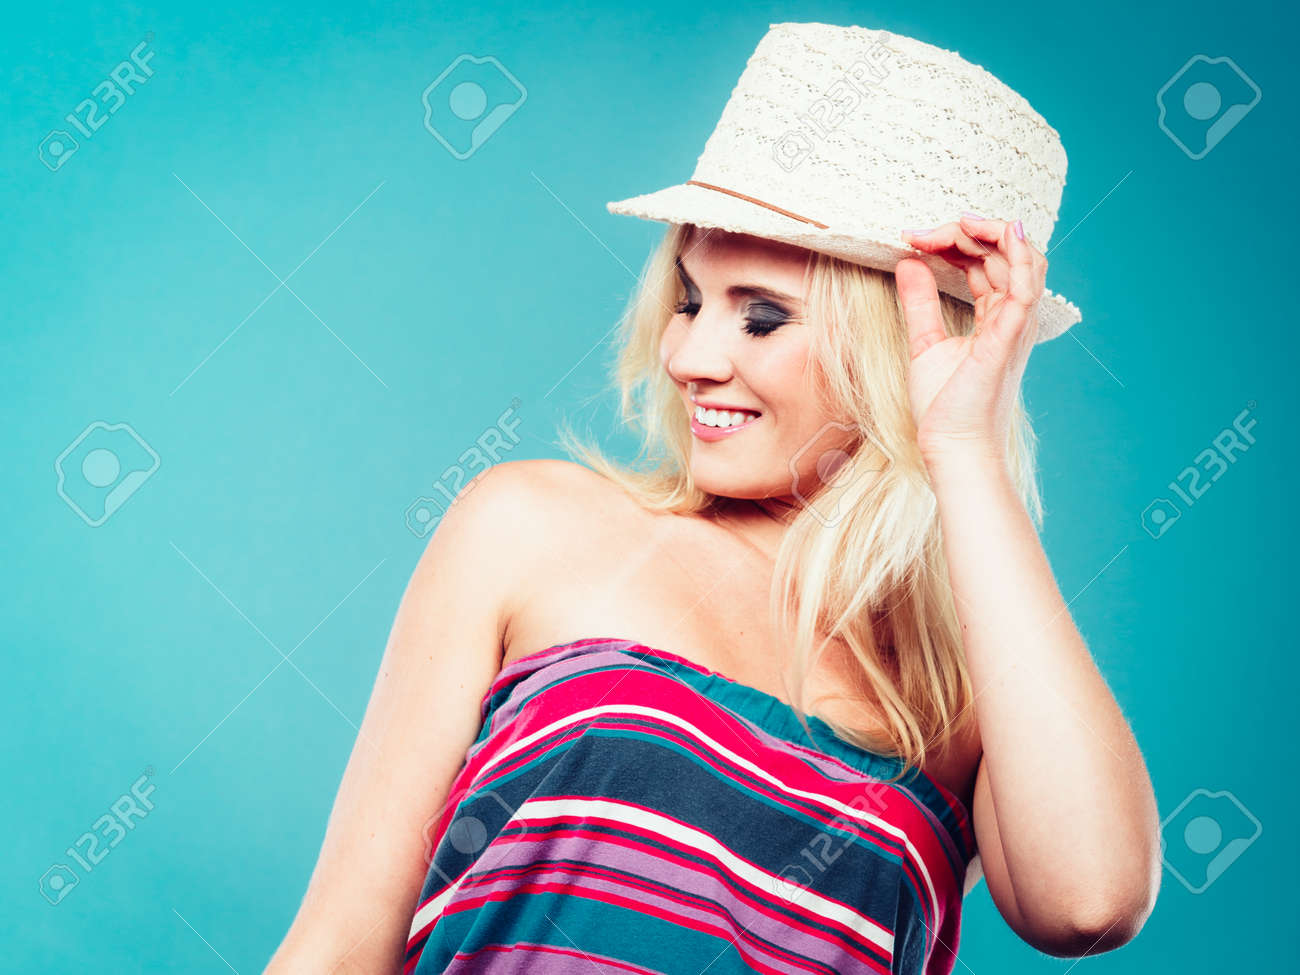 Summer Trendy Fashionable Outfit Ideas Concept Blonde Woman